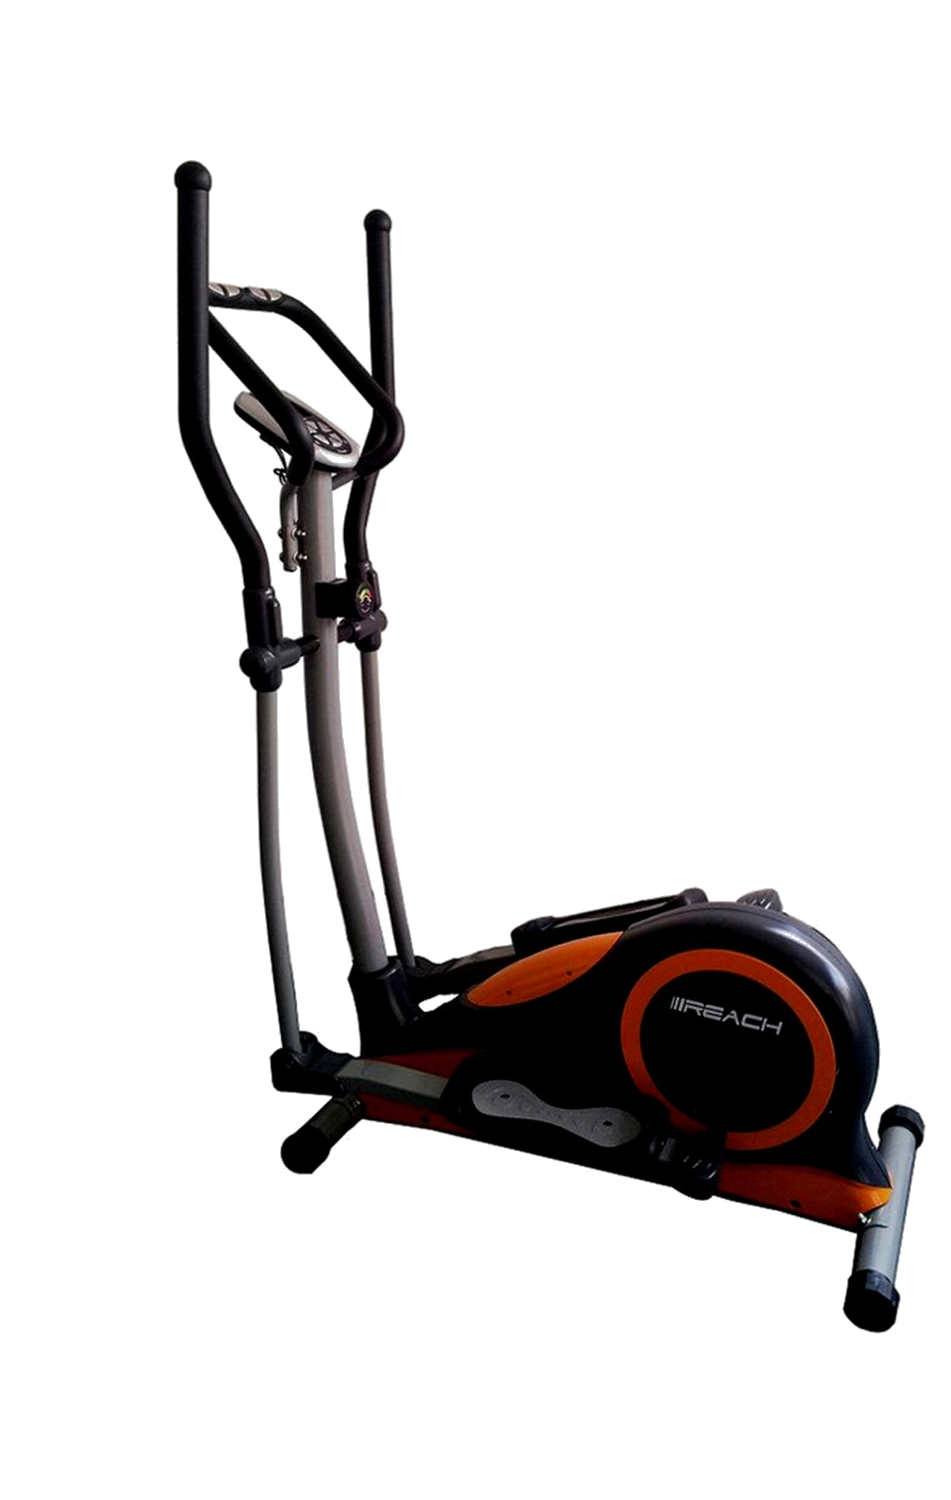 uploads gym equipment gym equipment PNG171 4